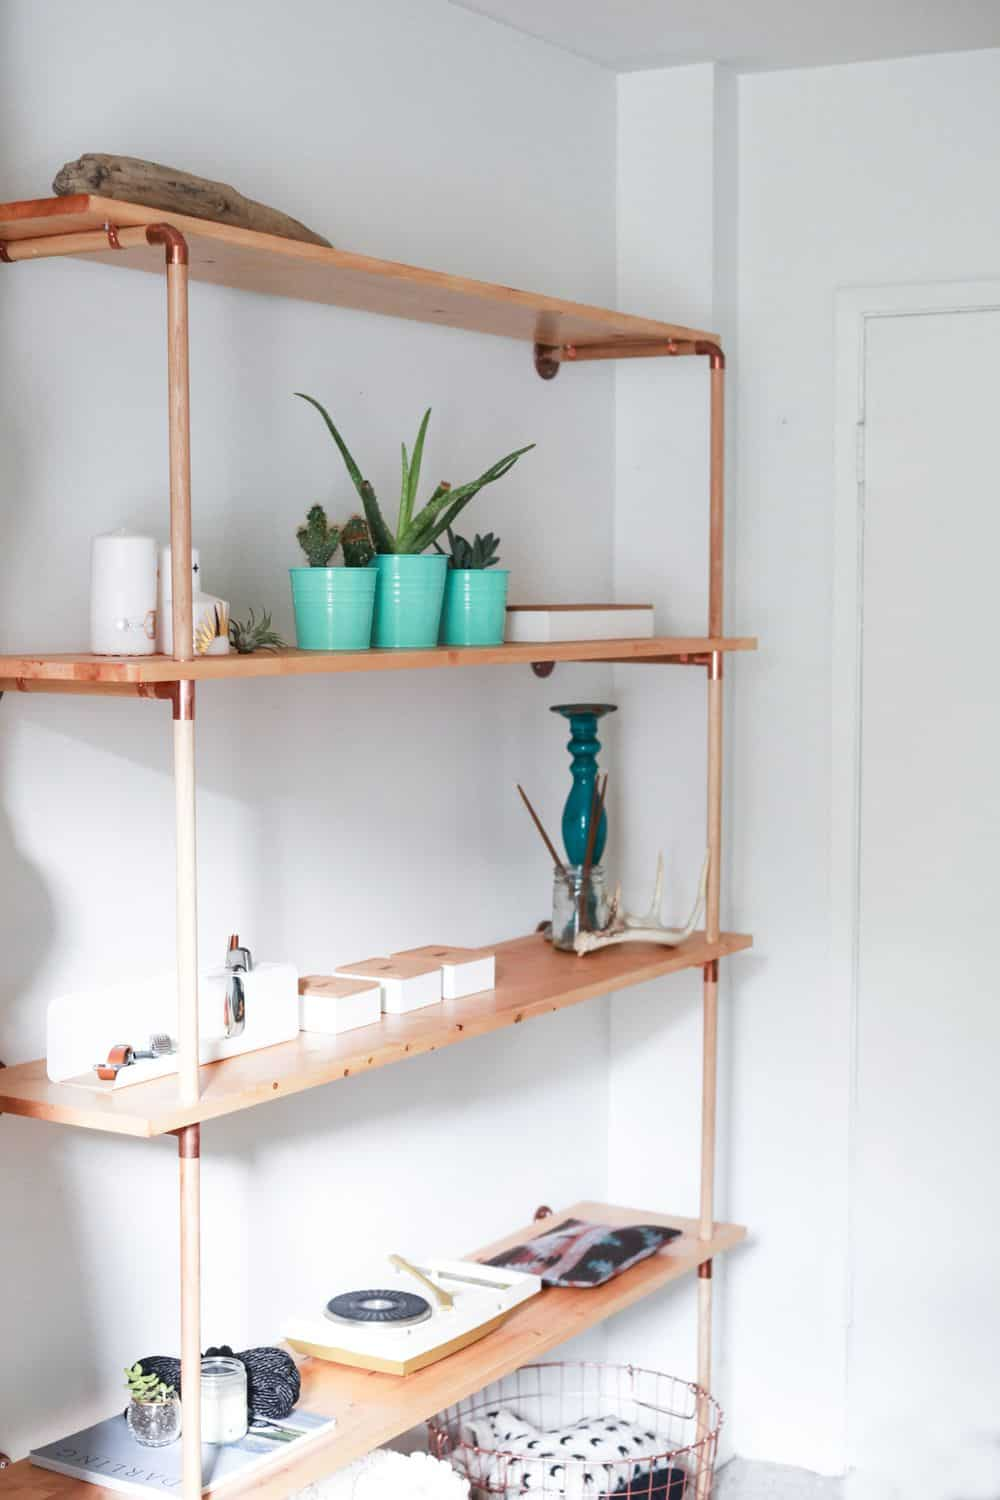 Diy cooper turn and wood dowel shelf